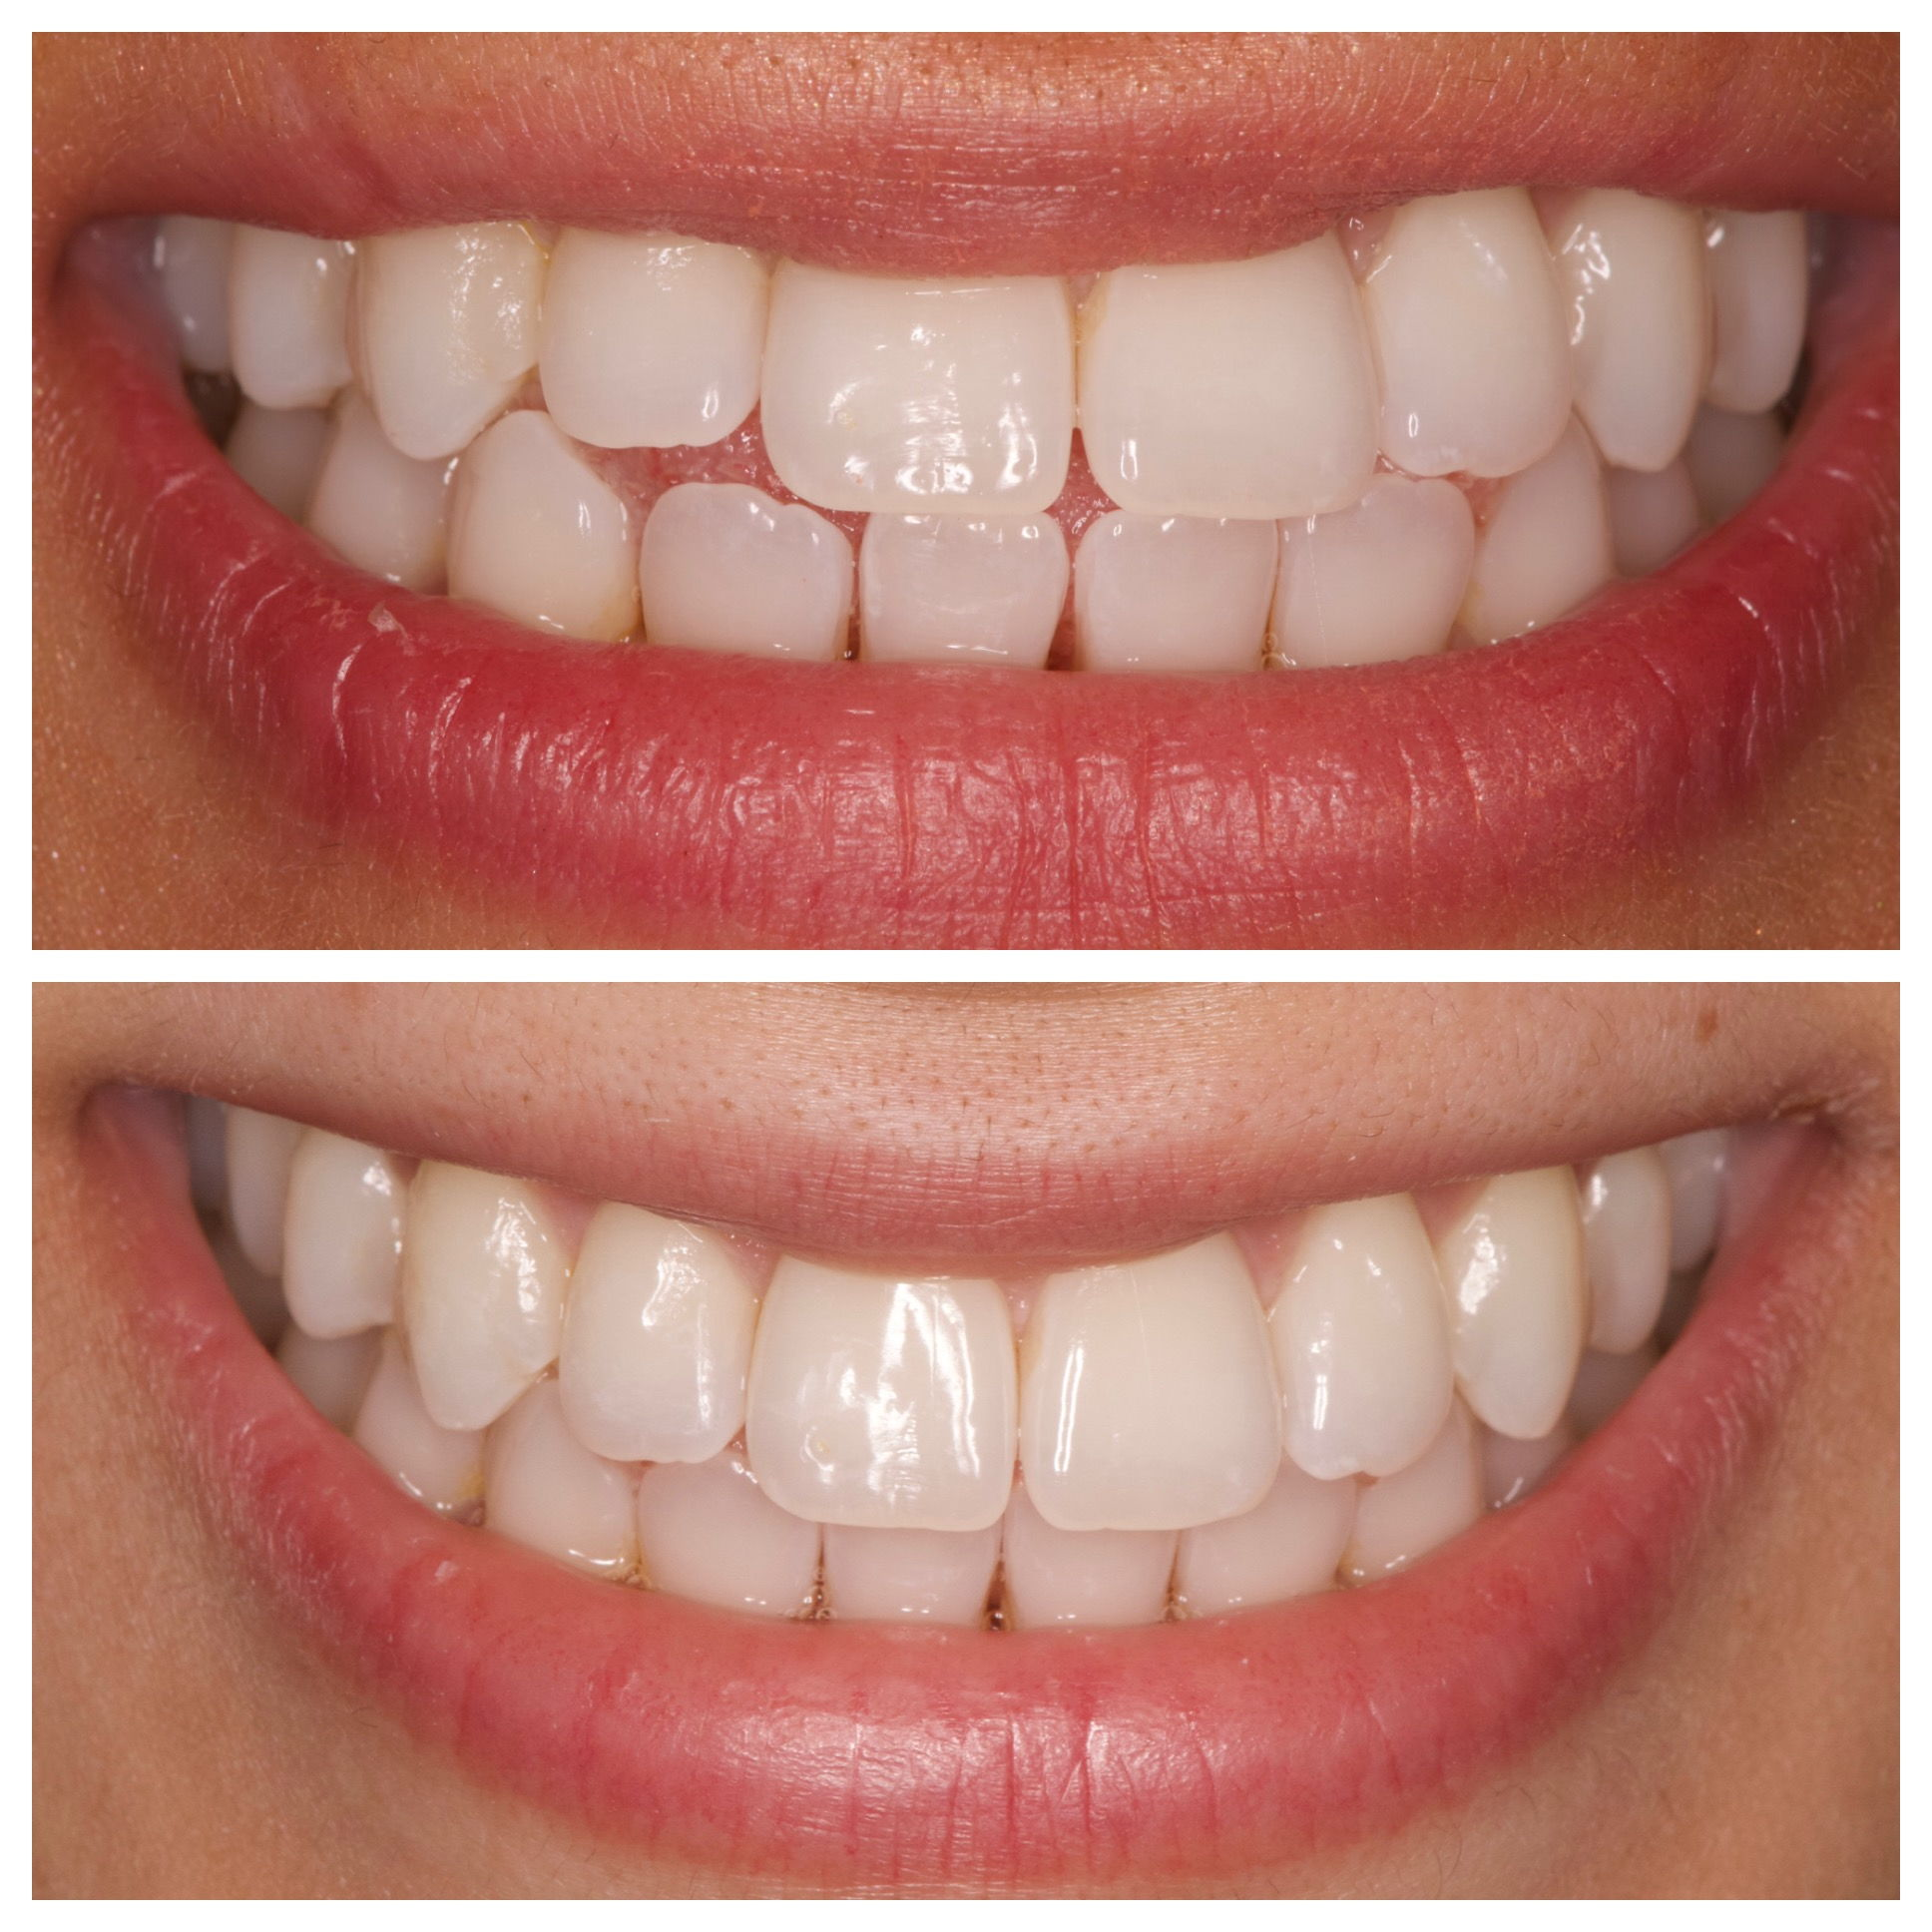 10 WEEK INVISALIGN SMILE ENHANCEMENT